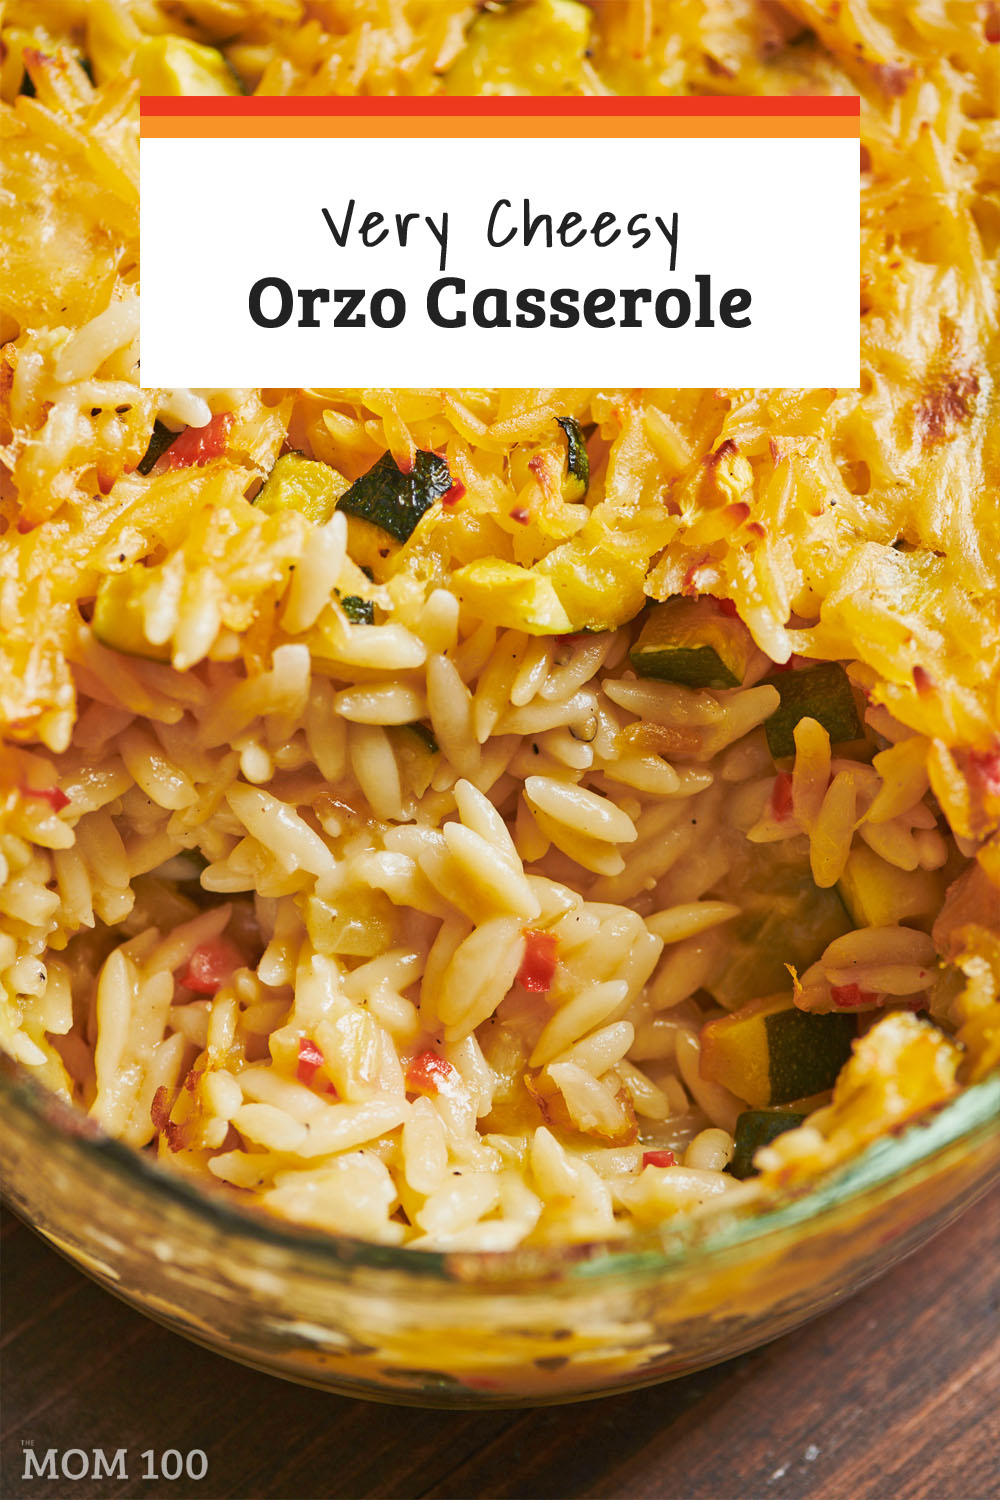 Very Cheesy Orzo Casserole: A small-pasta take on macaroni and cheese, with some vegetables built in for peace of color and texture.  And also for some justification and peace of mind, because you know, all that wonderful cheese. #sidedish #macandcheese